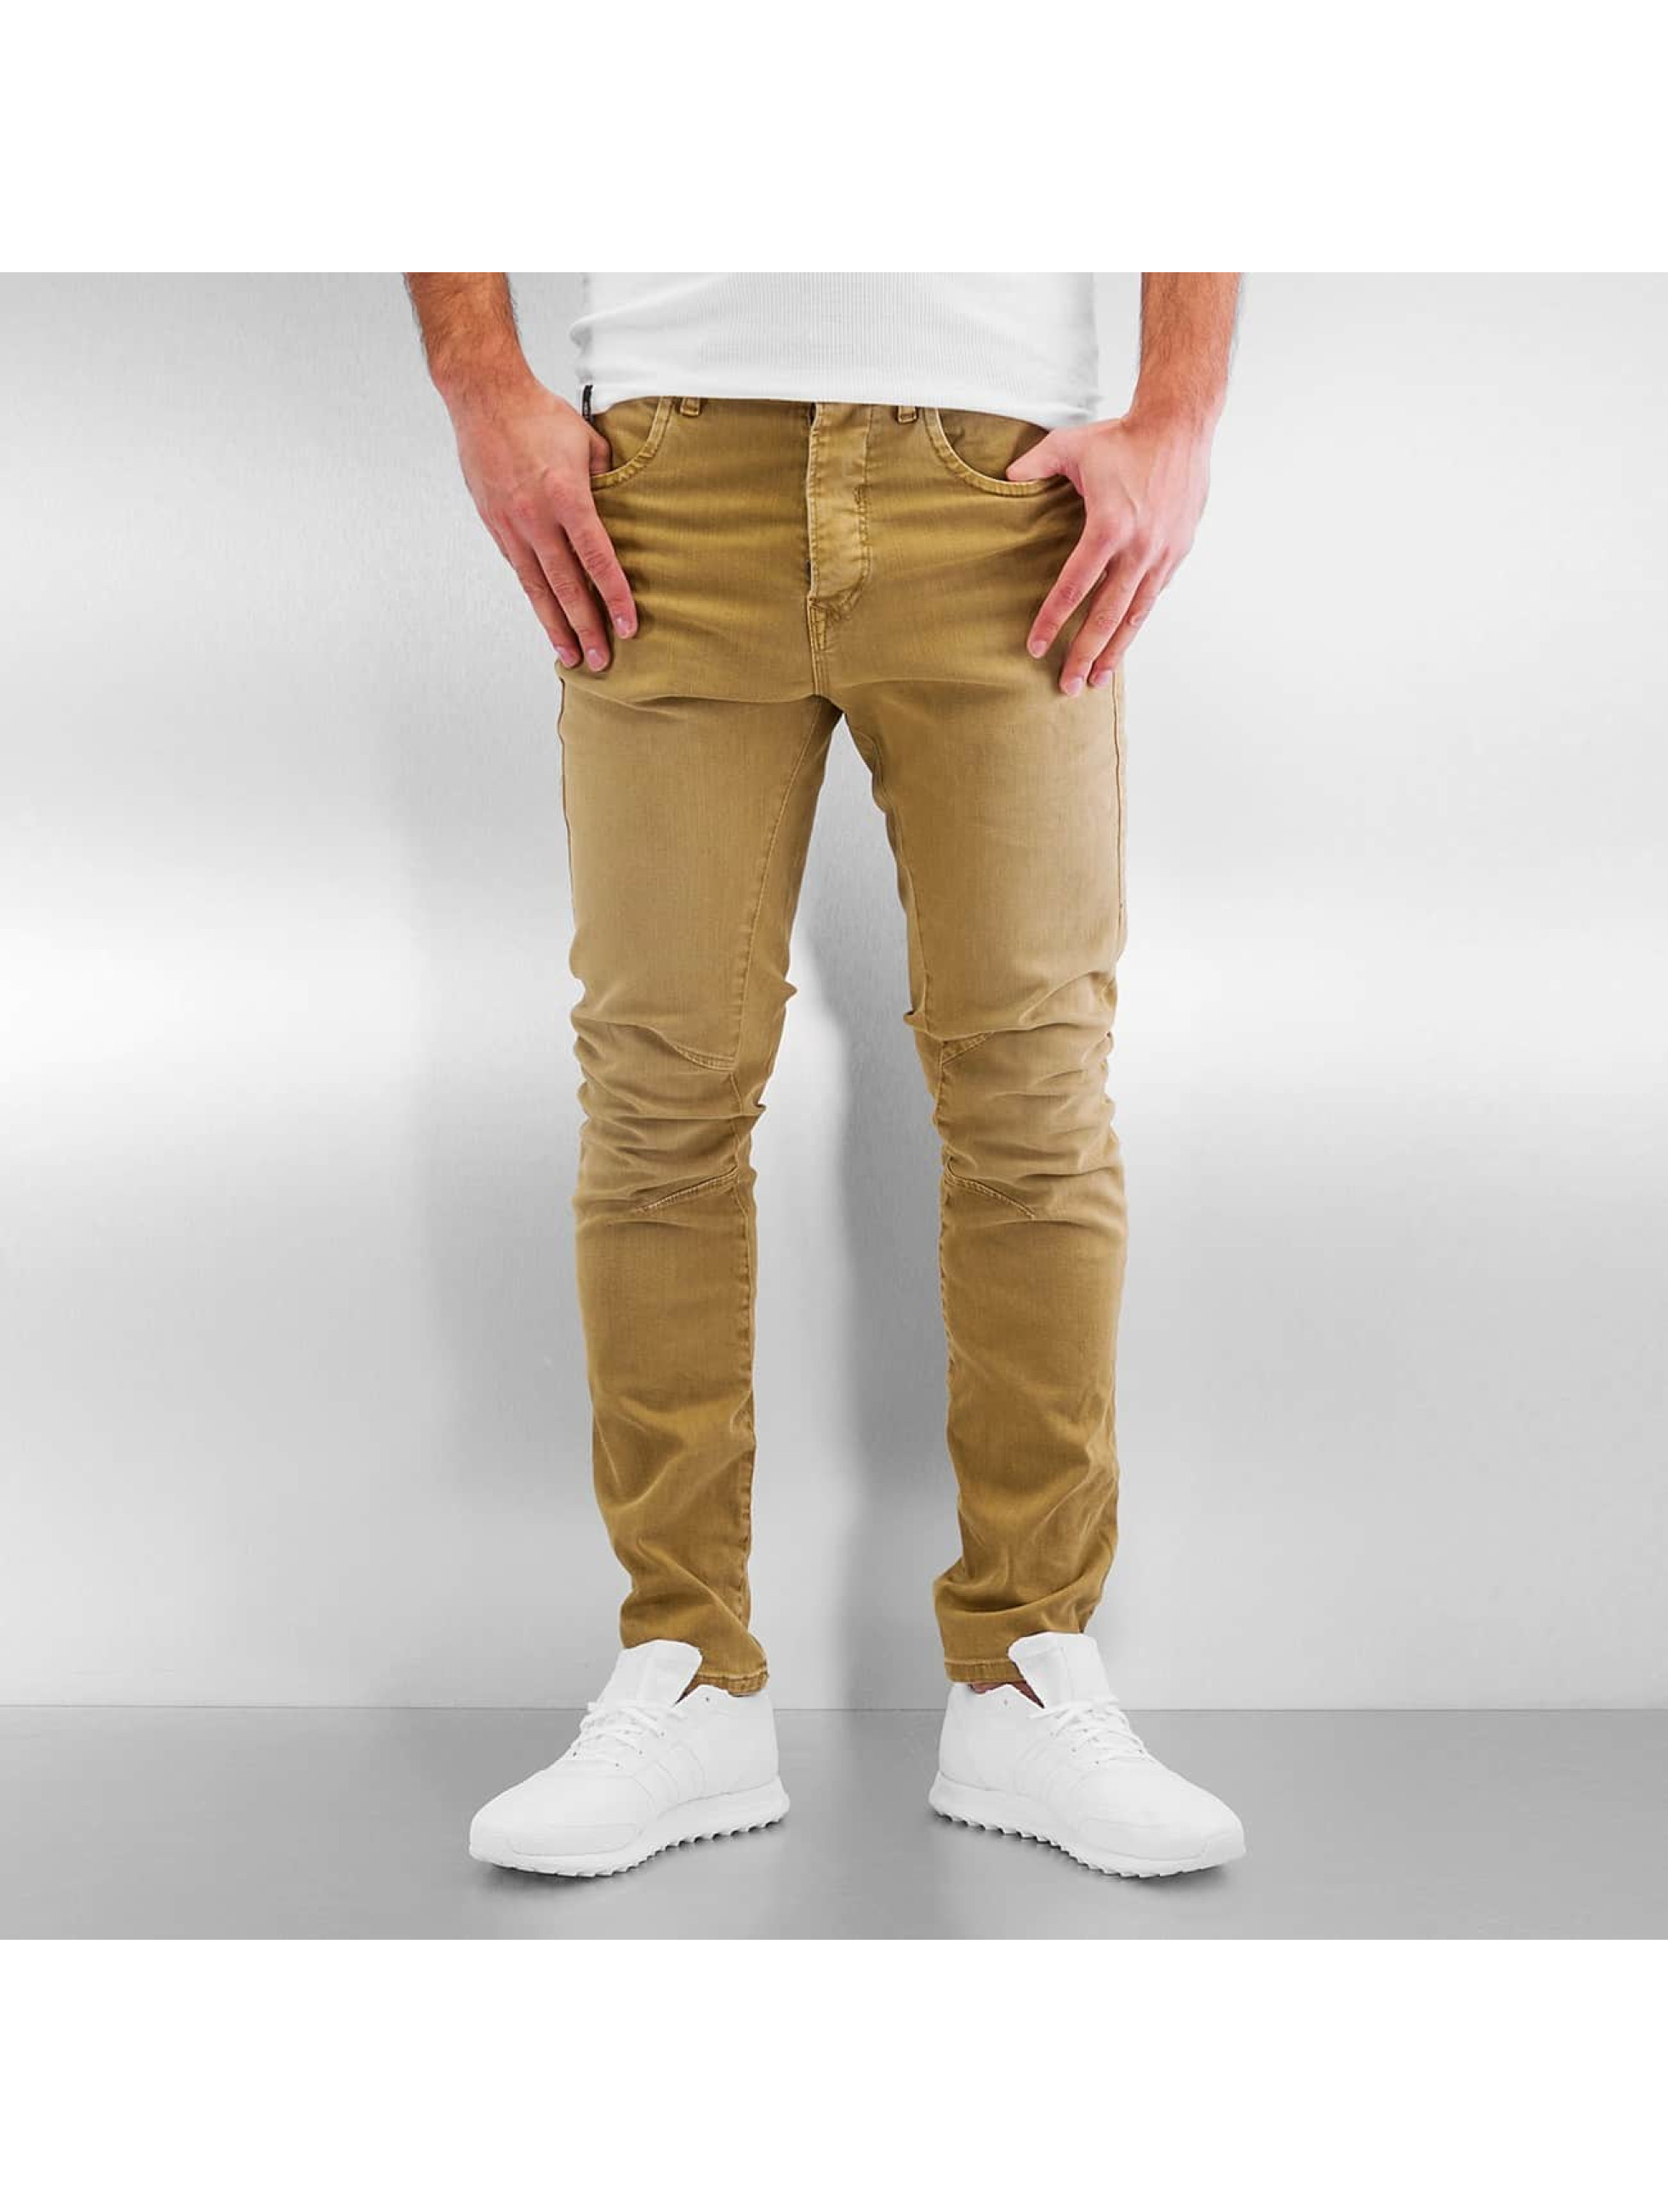 Jack & Jones Slim Fit Jeans jjIluke jjEcho JOS 999 hnedá